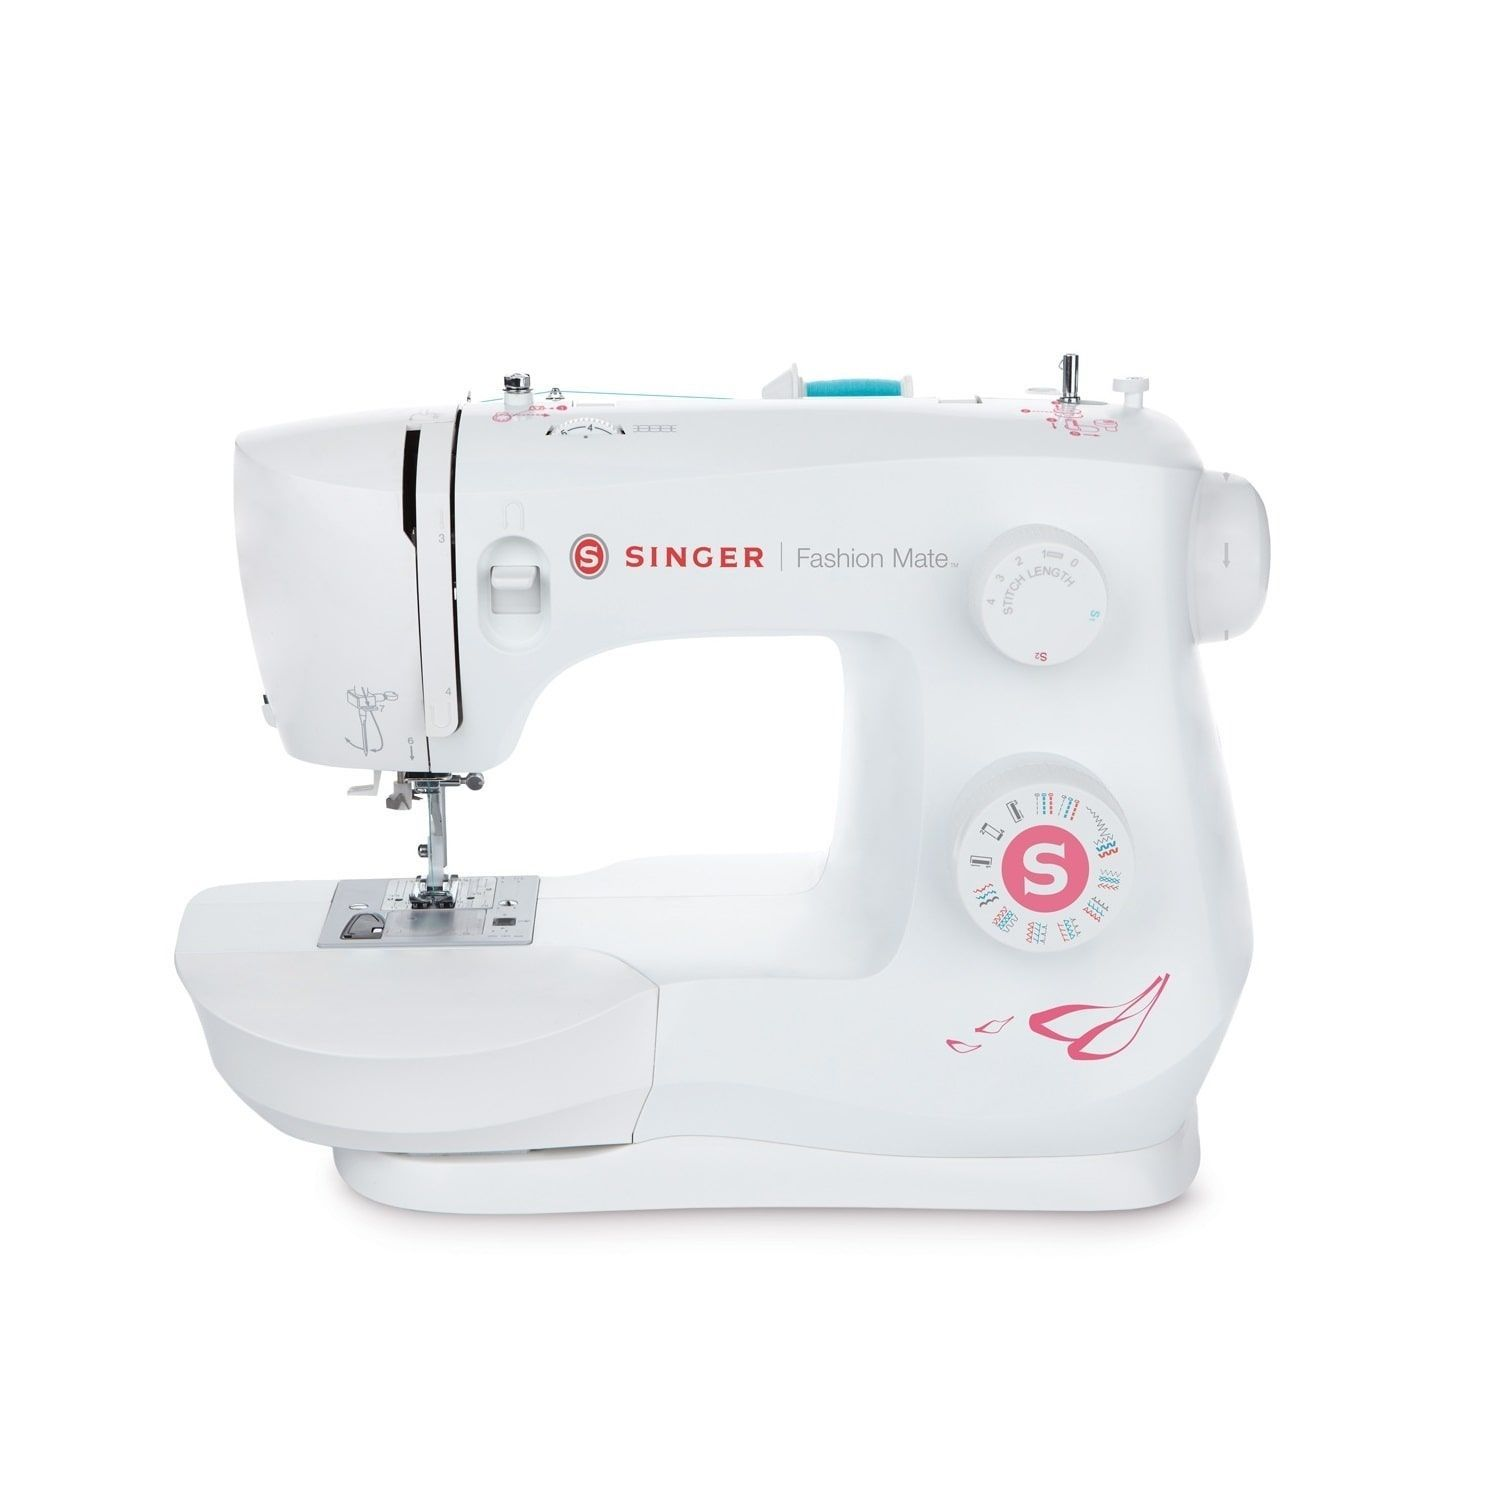 Singer 3333 Fashion Mate Sewing Machine, Grey | Products | Pinterest ...